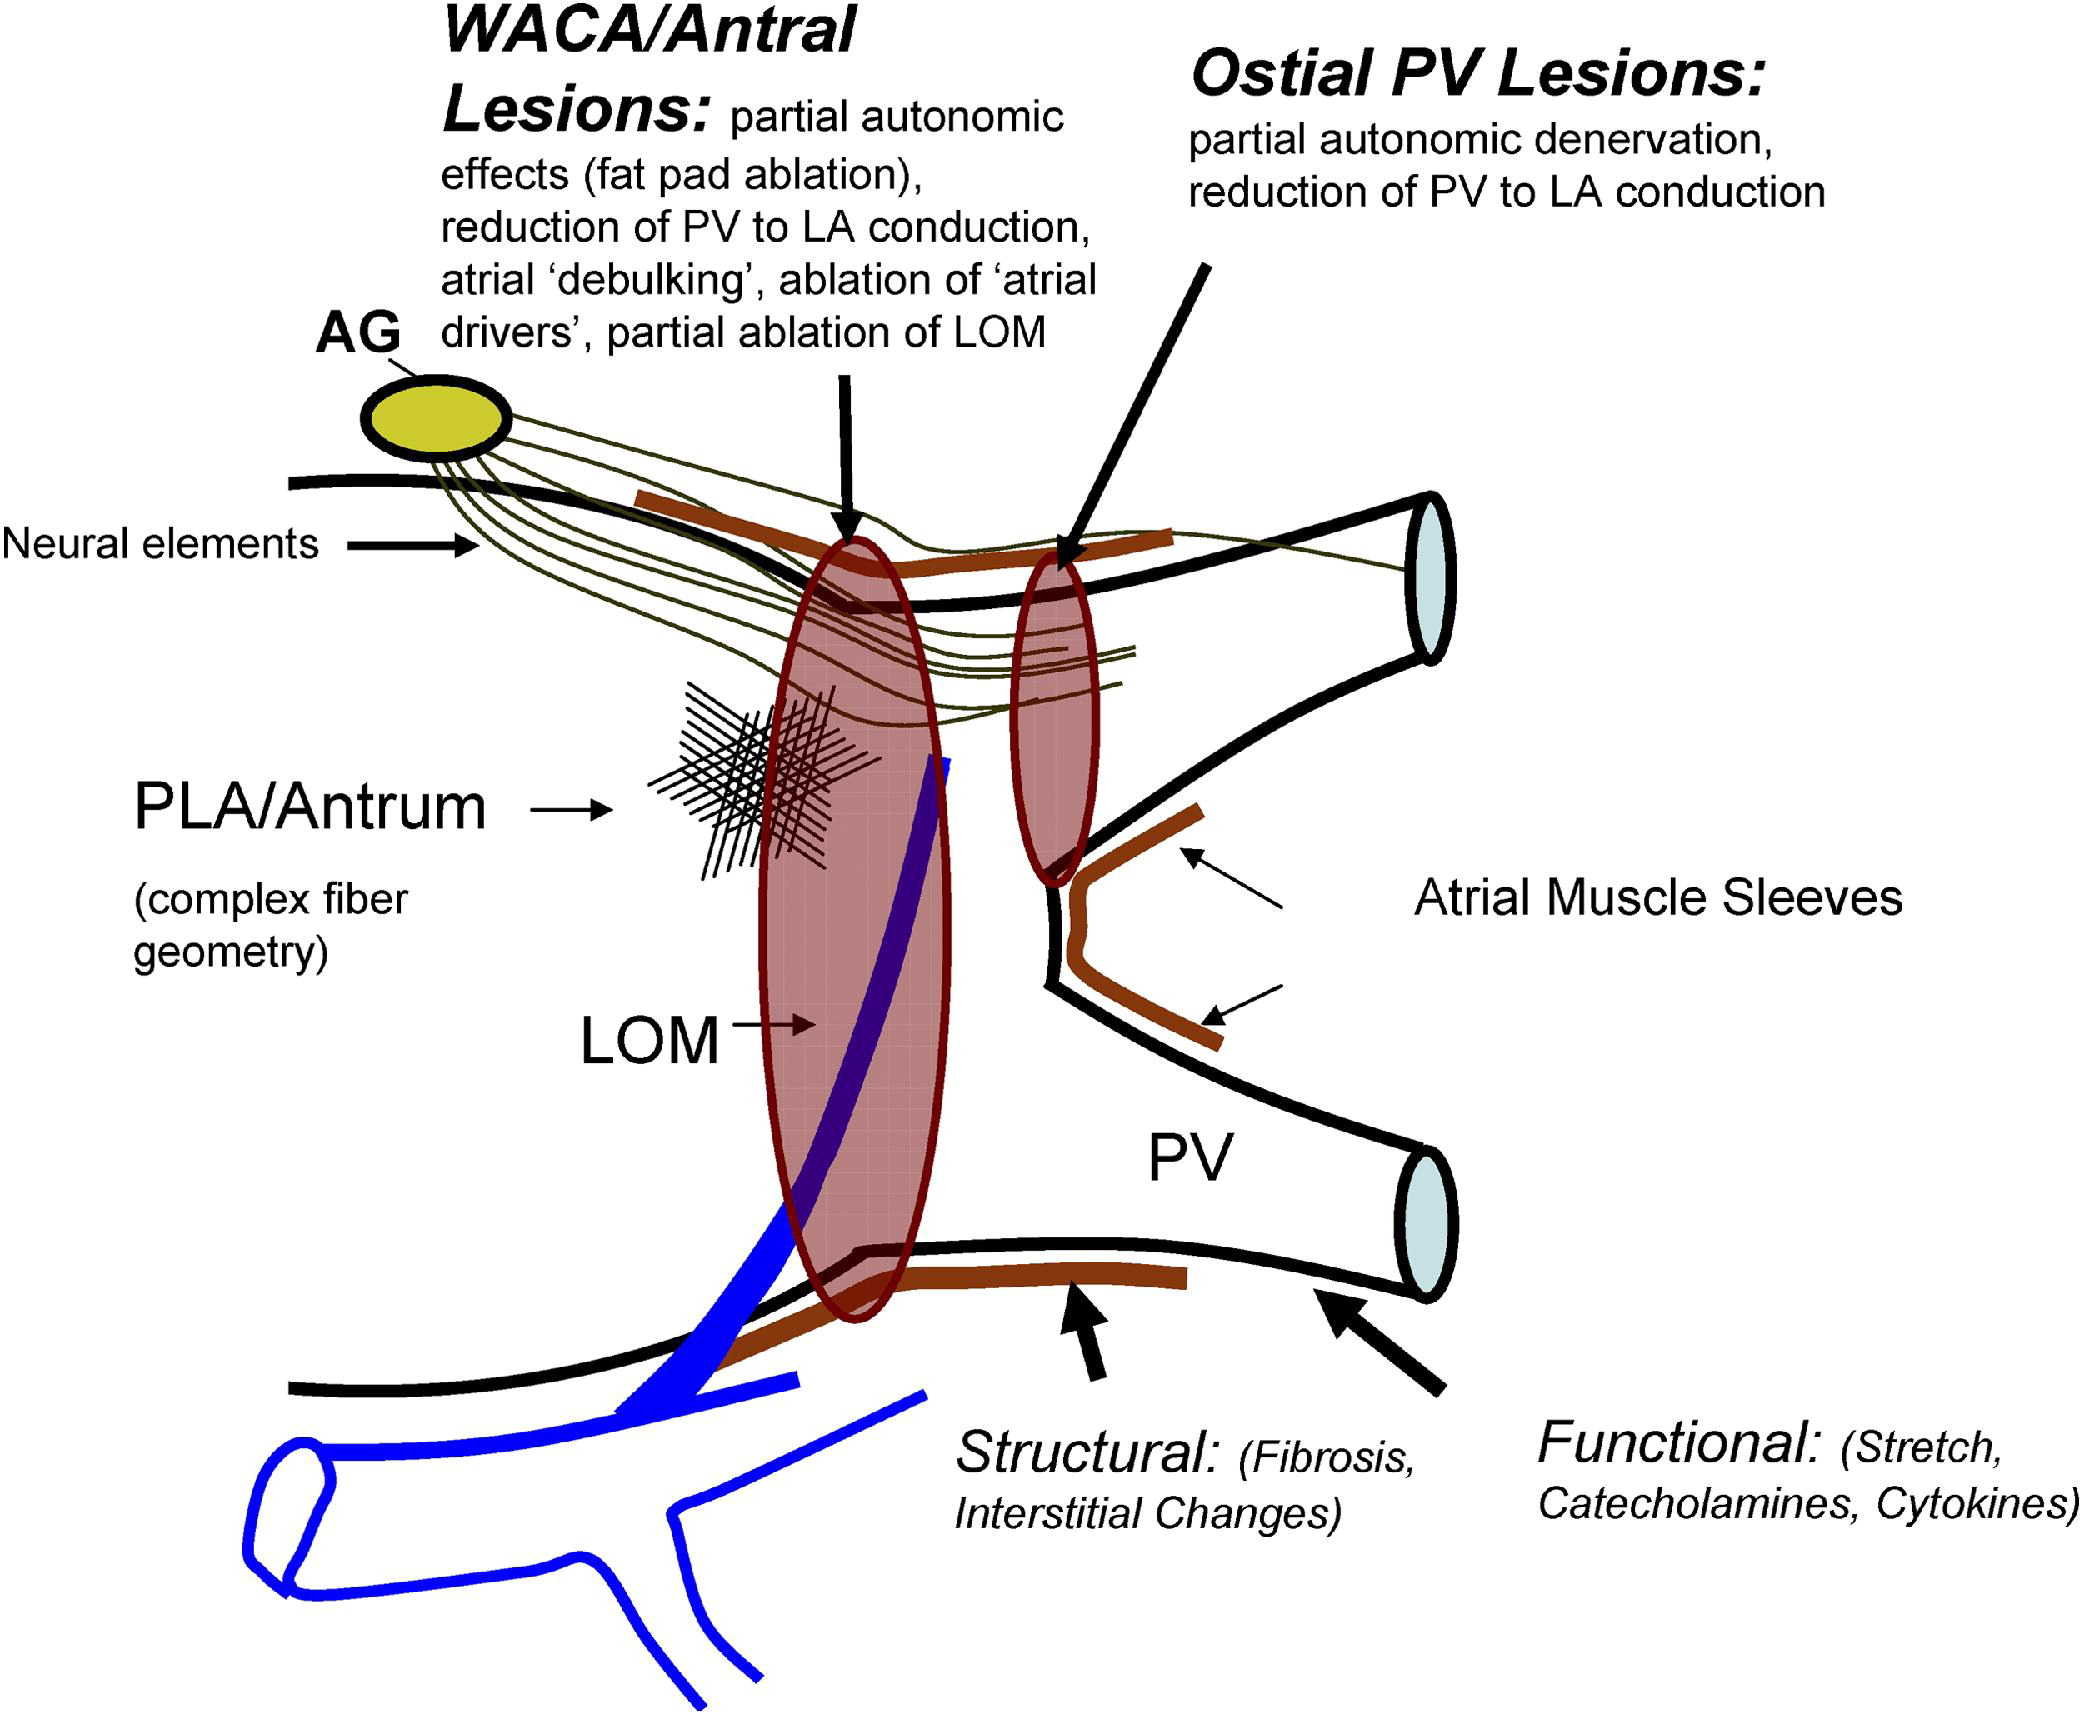 the role of the atrium in The right atrium receives deoxygenated blood from the body through the vena cava and pumps it into the right ventricle which then sends it to the lungs to be oxygenated.